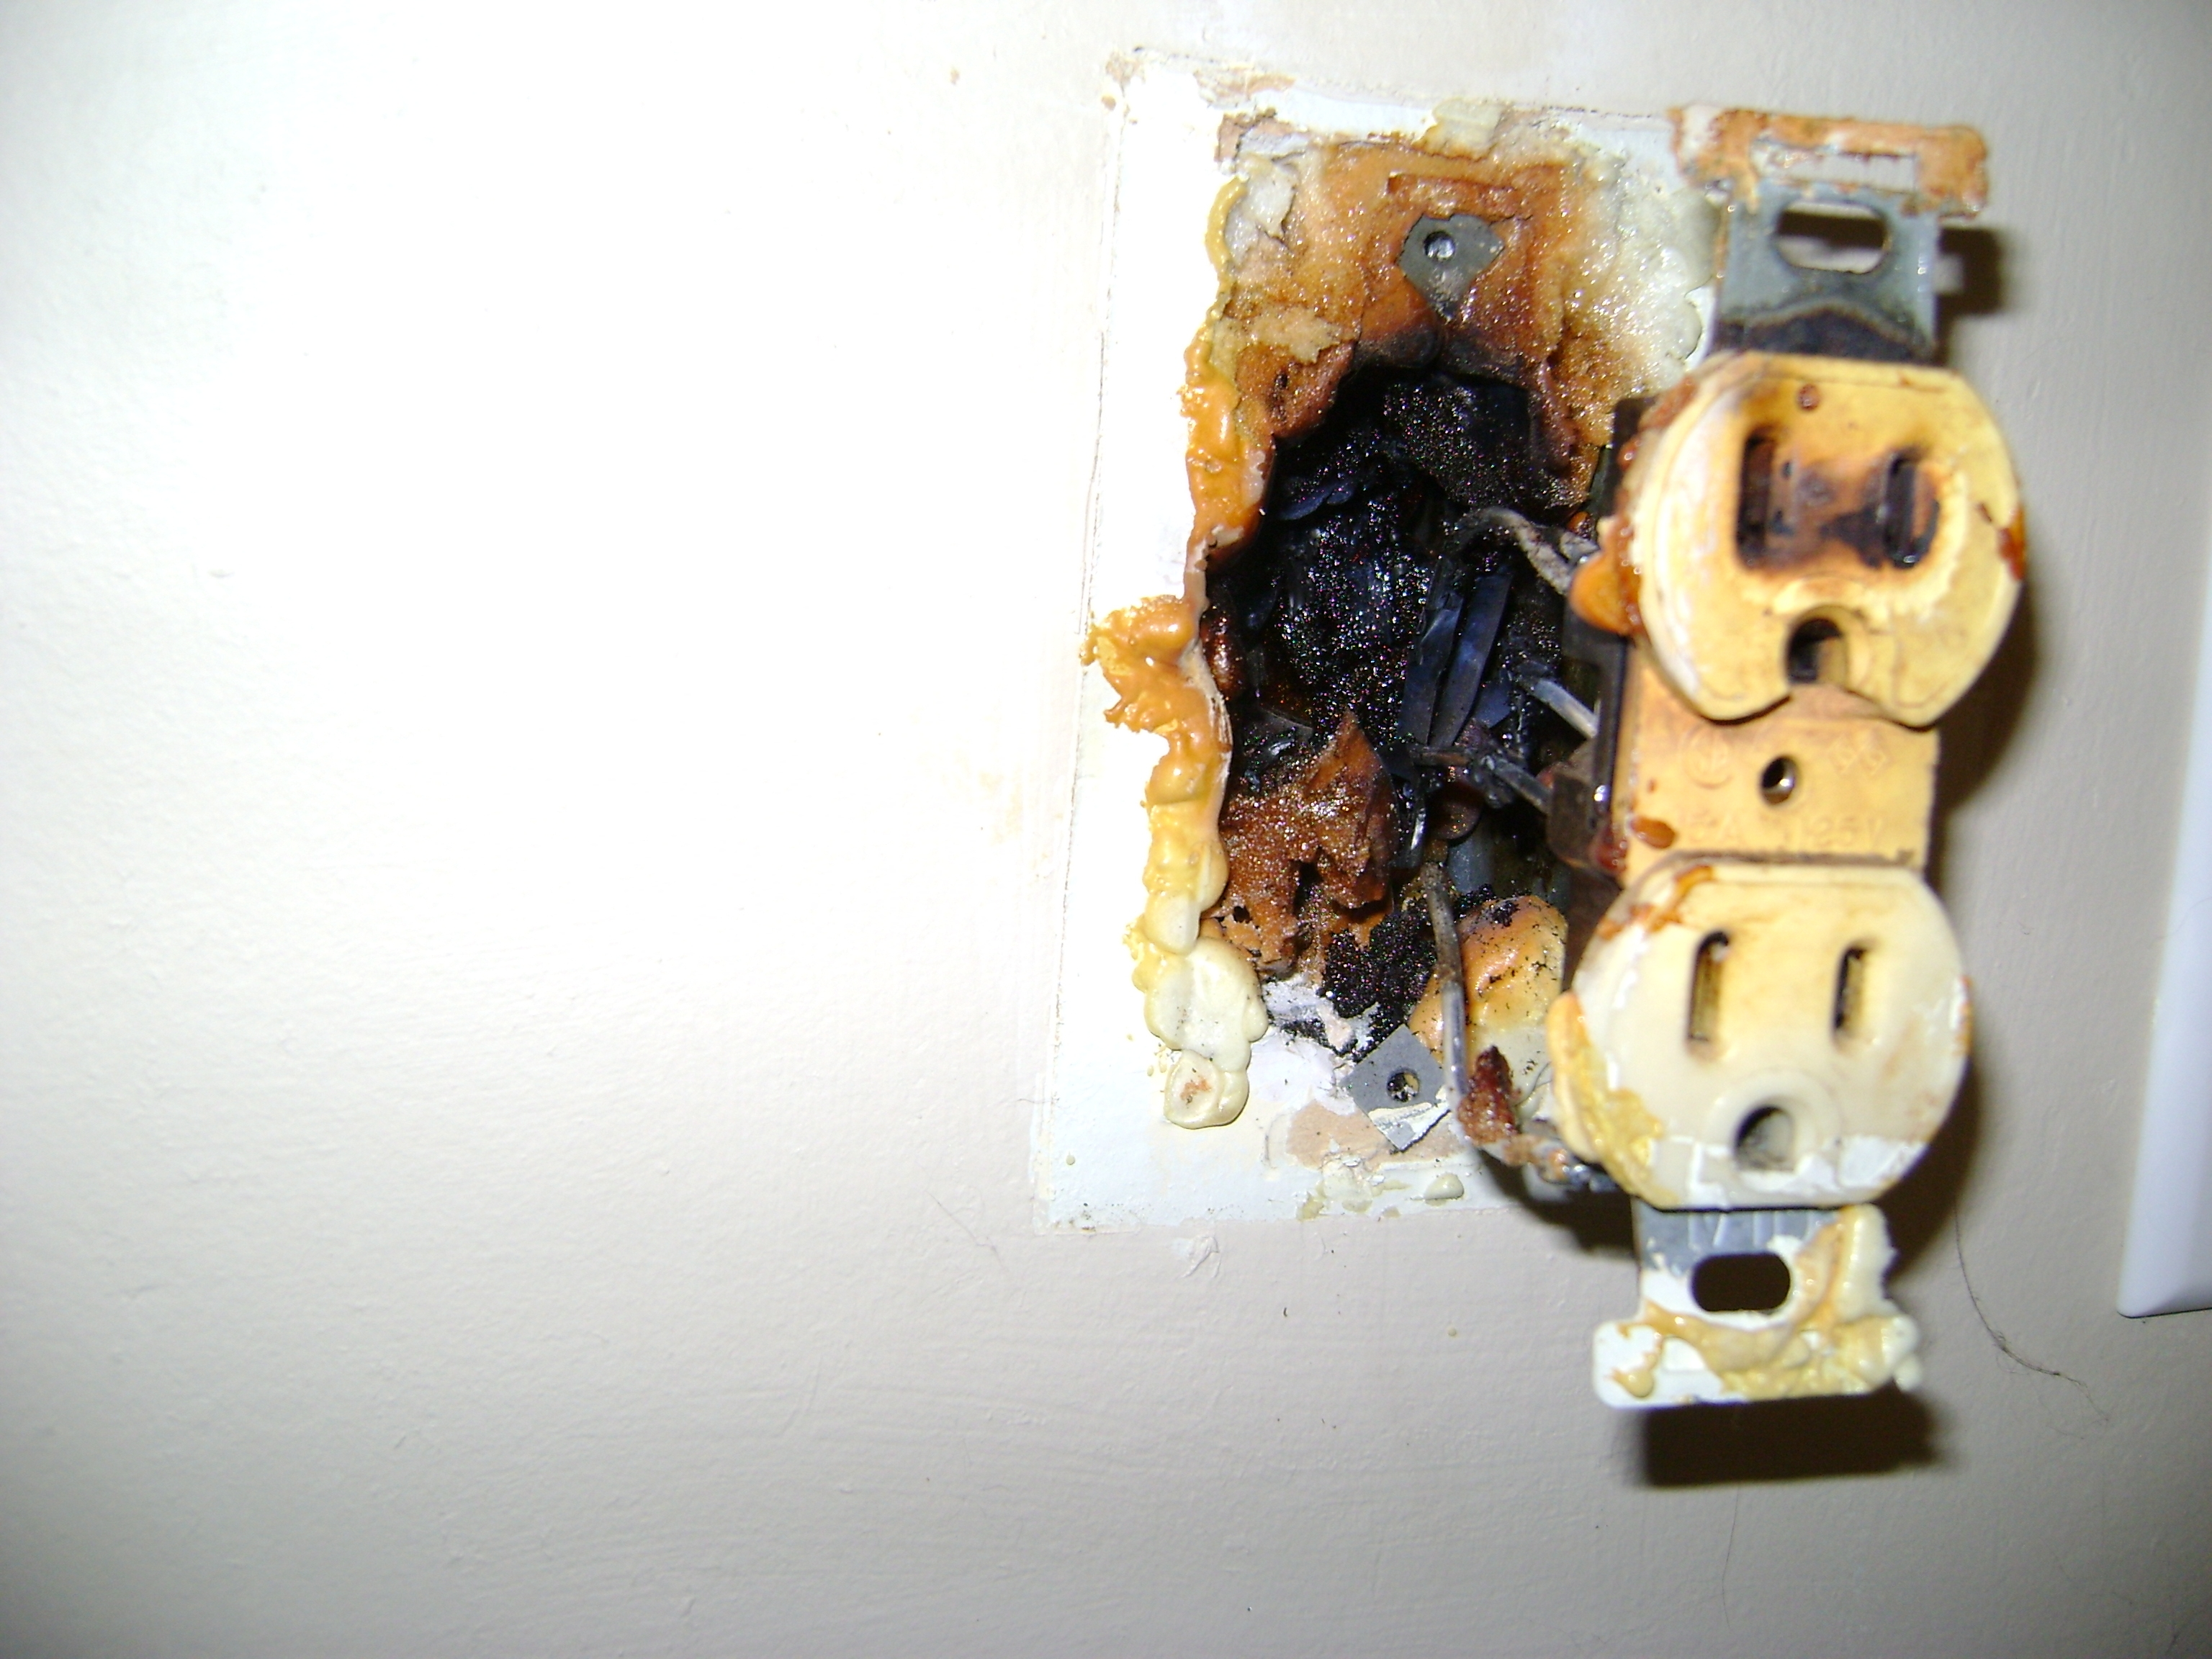 Aluminum Wiring Captains Blog New Outlet Box This Shows What Can Happen Homeowner Sprayed Expanding Foam Into Which